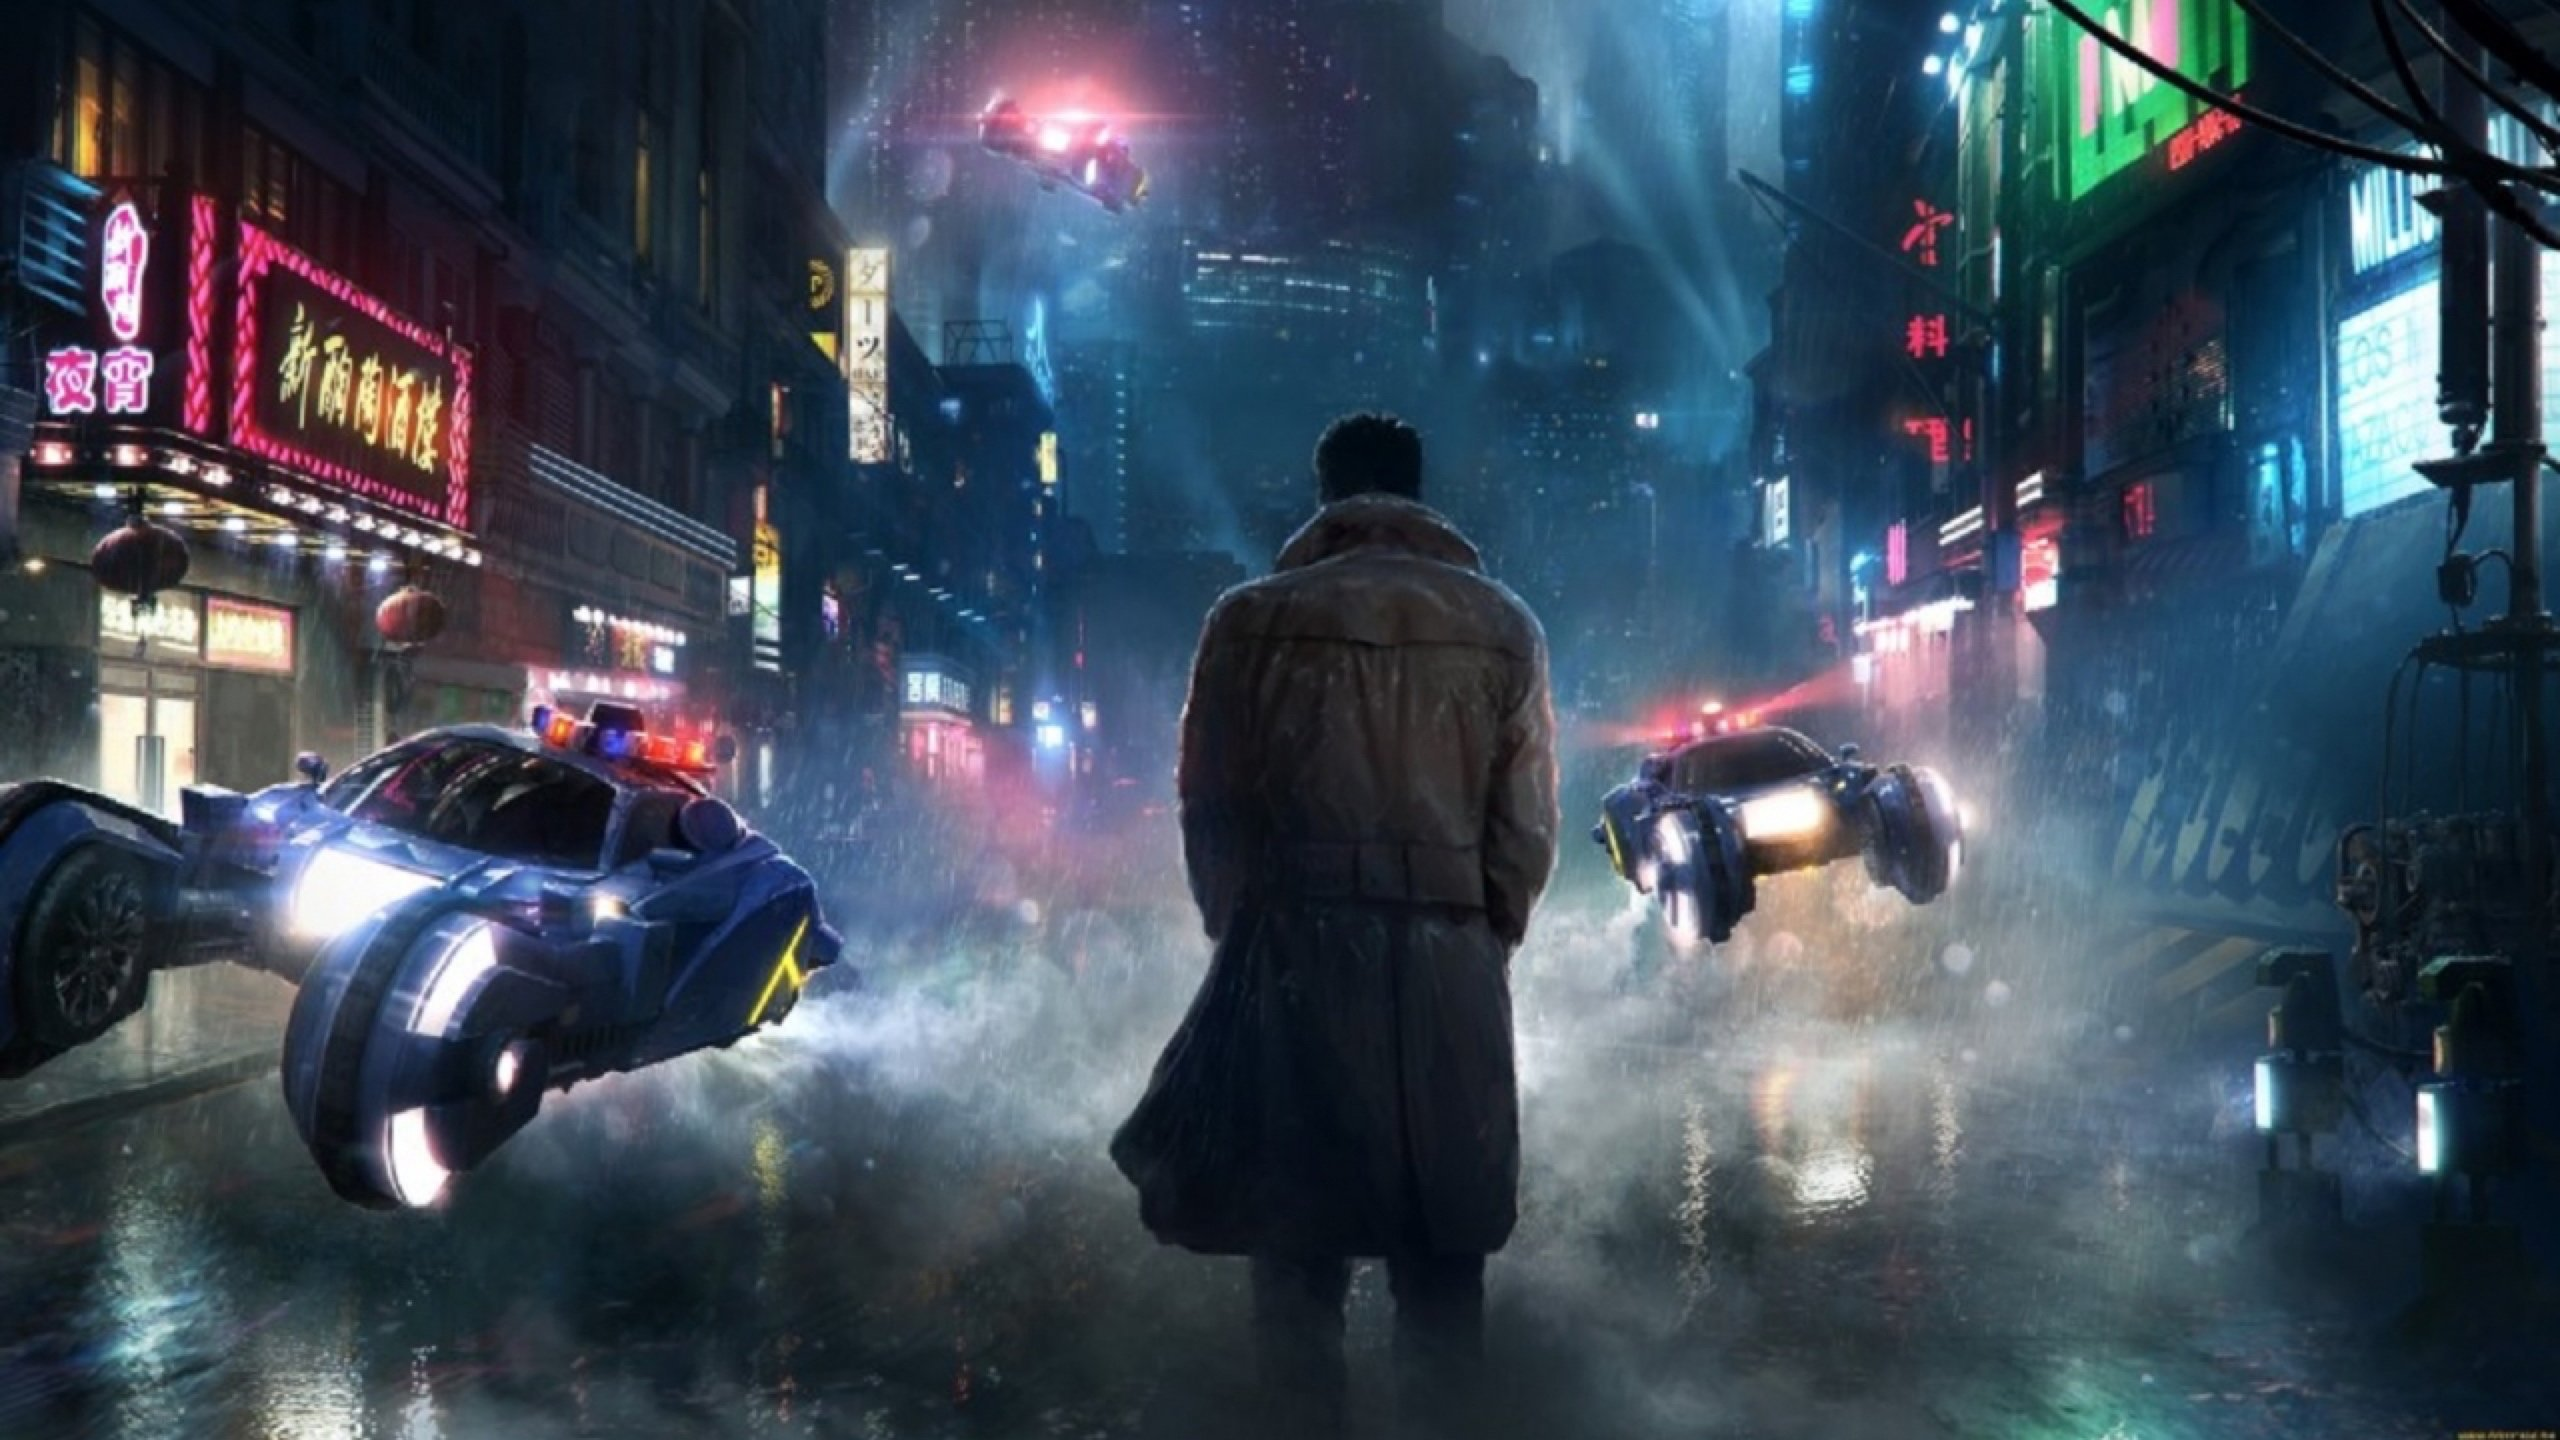 New Blade Runner 2049 Clip 'Bigger Than You' Released